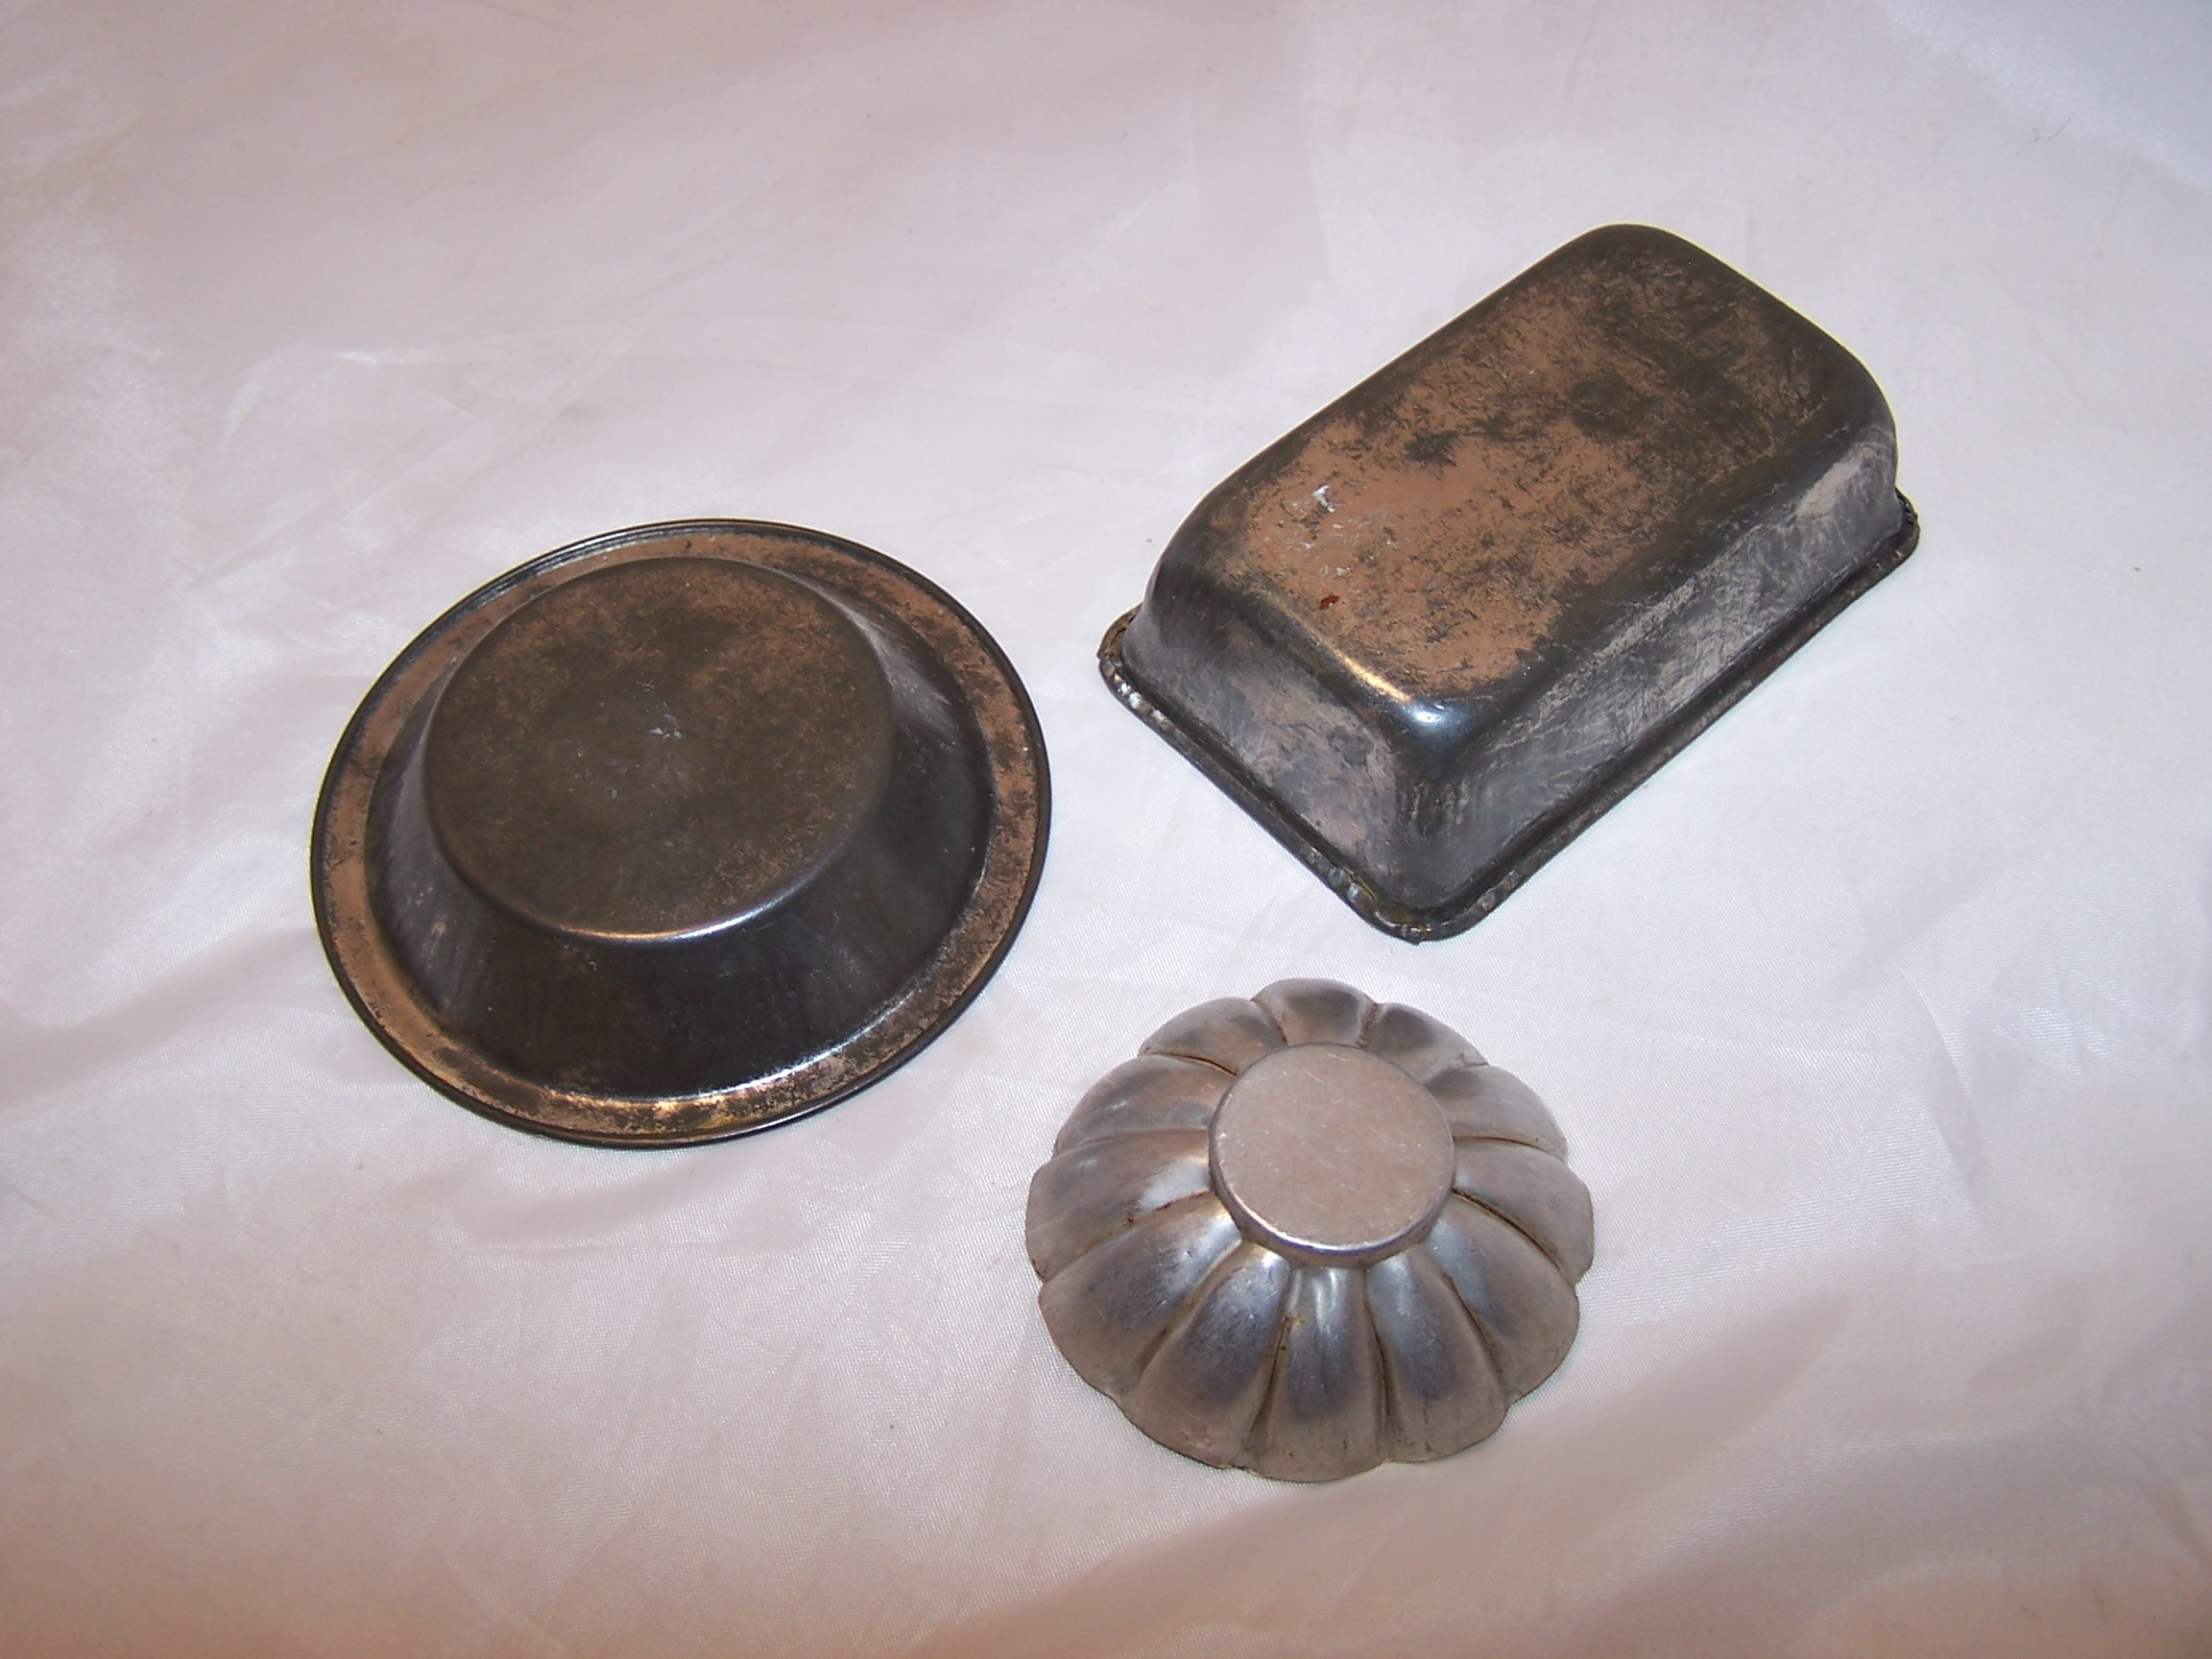 Image 1 of Toy Baking Pan, Pie Pan, Mold Childs Cookware, Aluminum